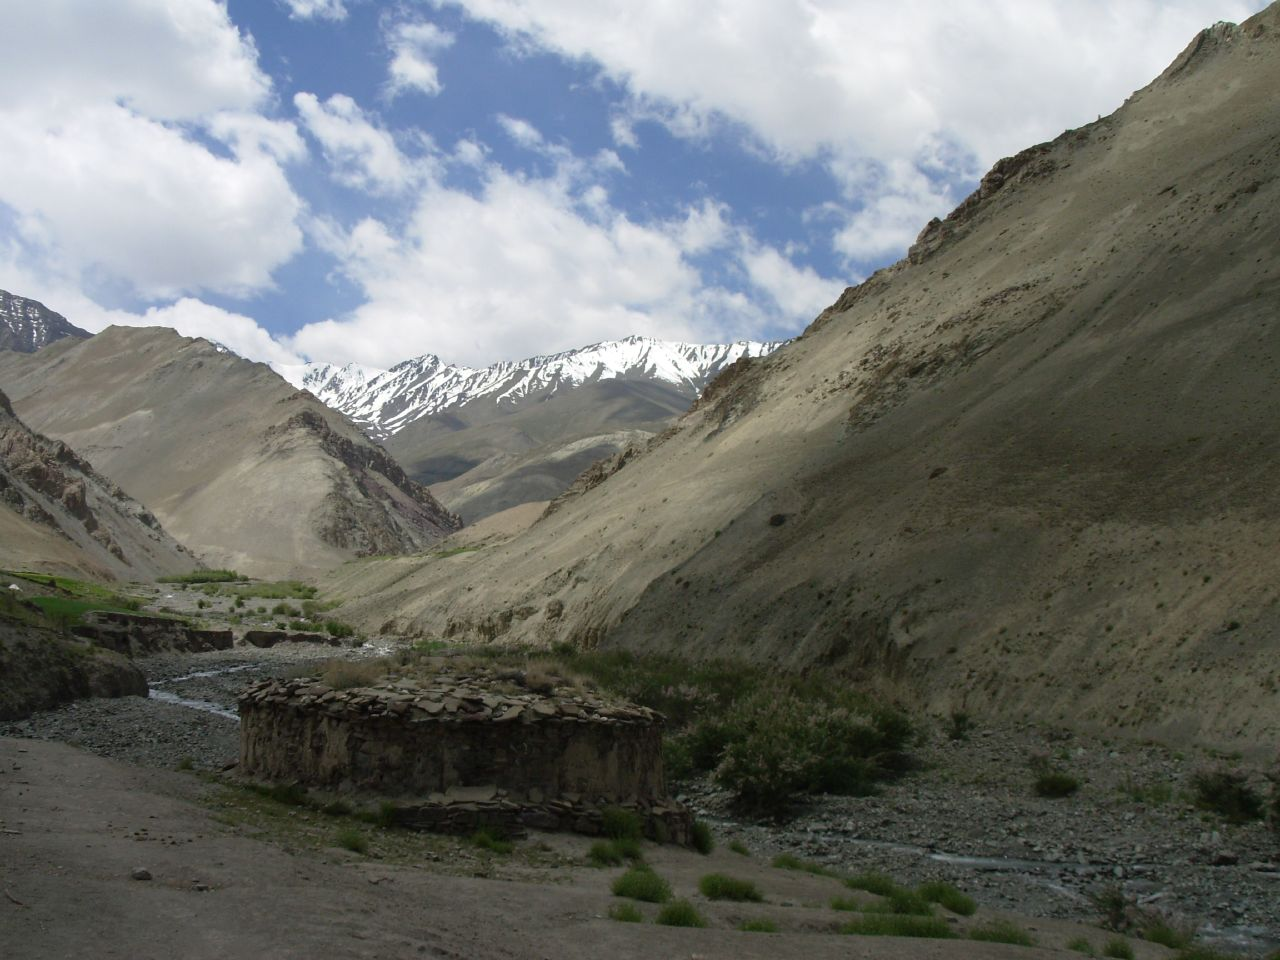 Zanskar Range - © By Flickr user madpai